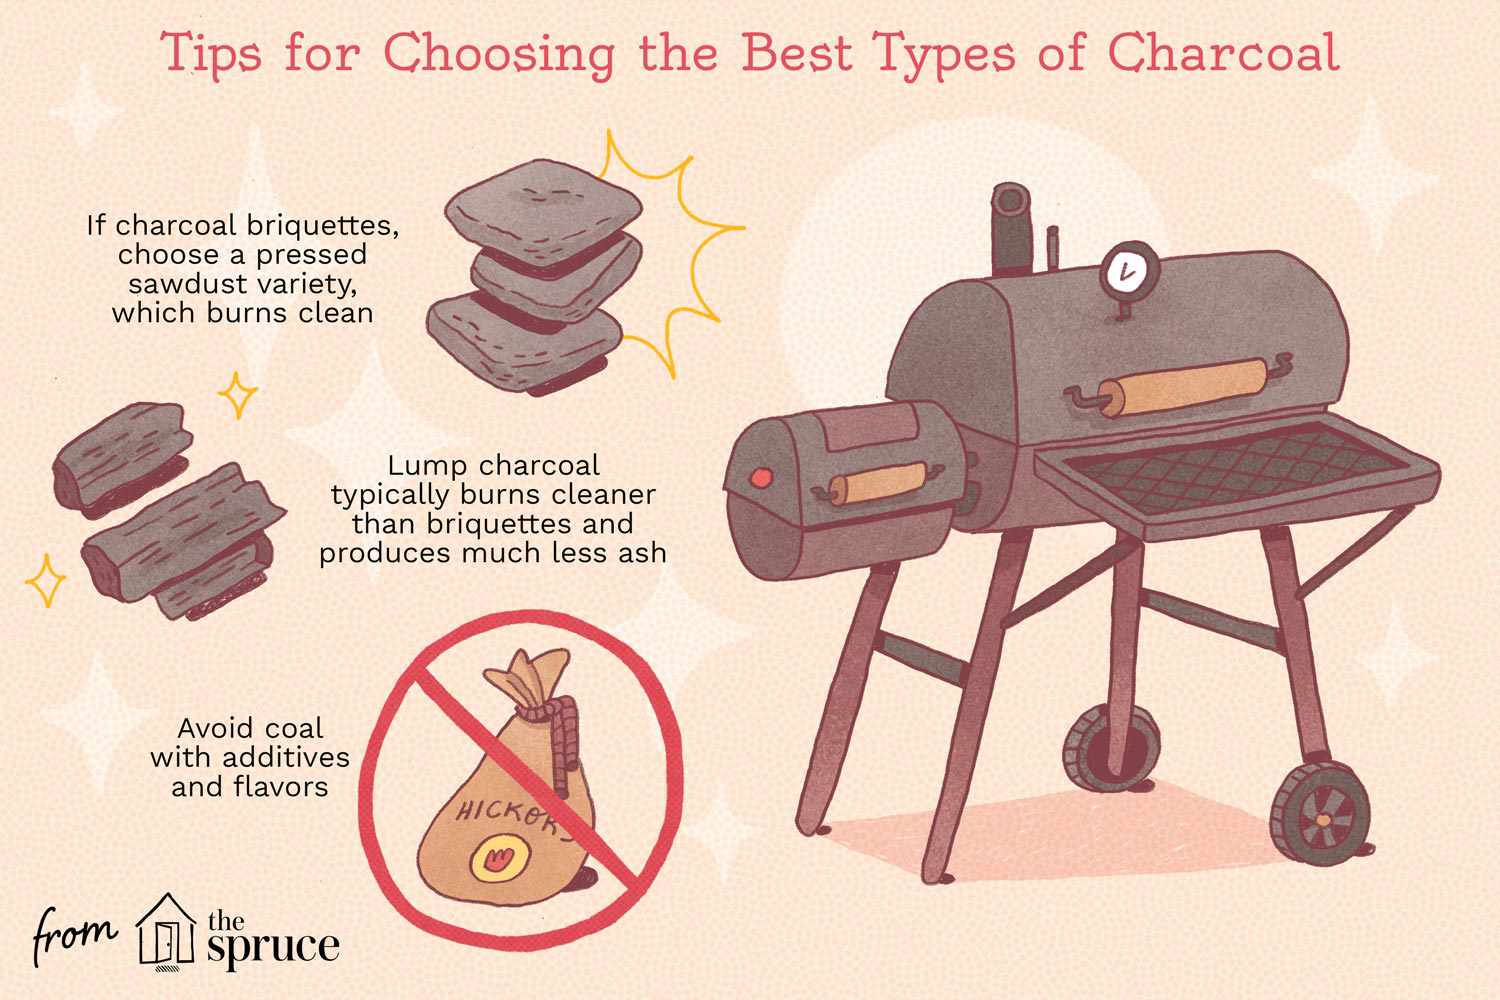 best charcoal to use for smoking